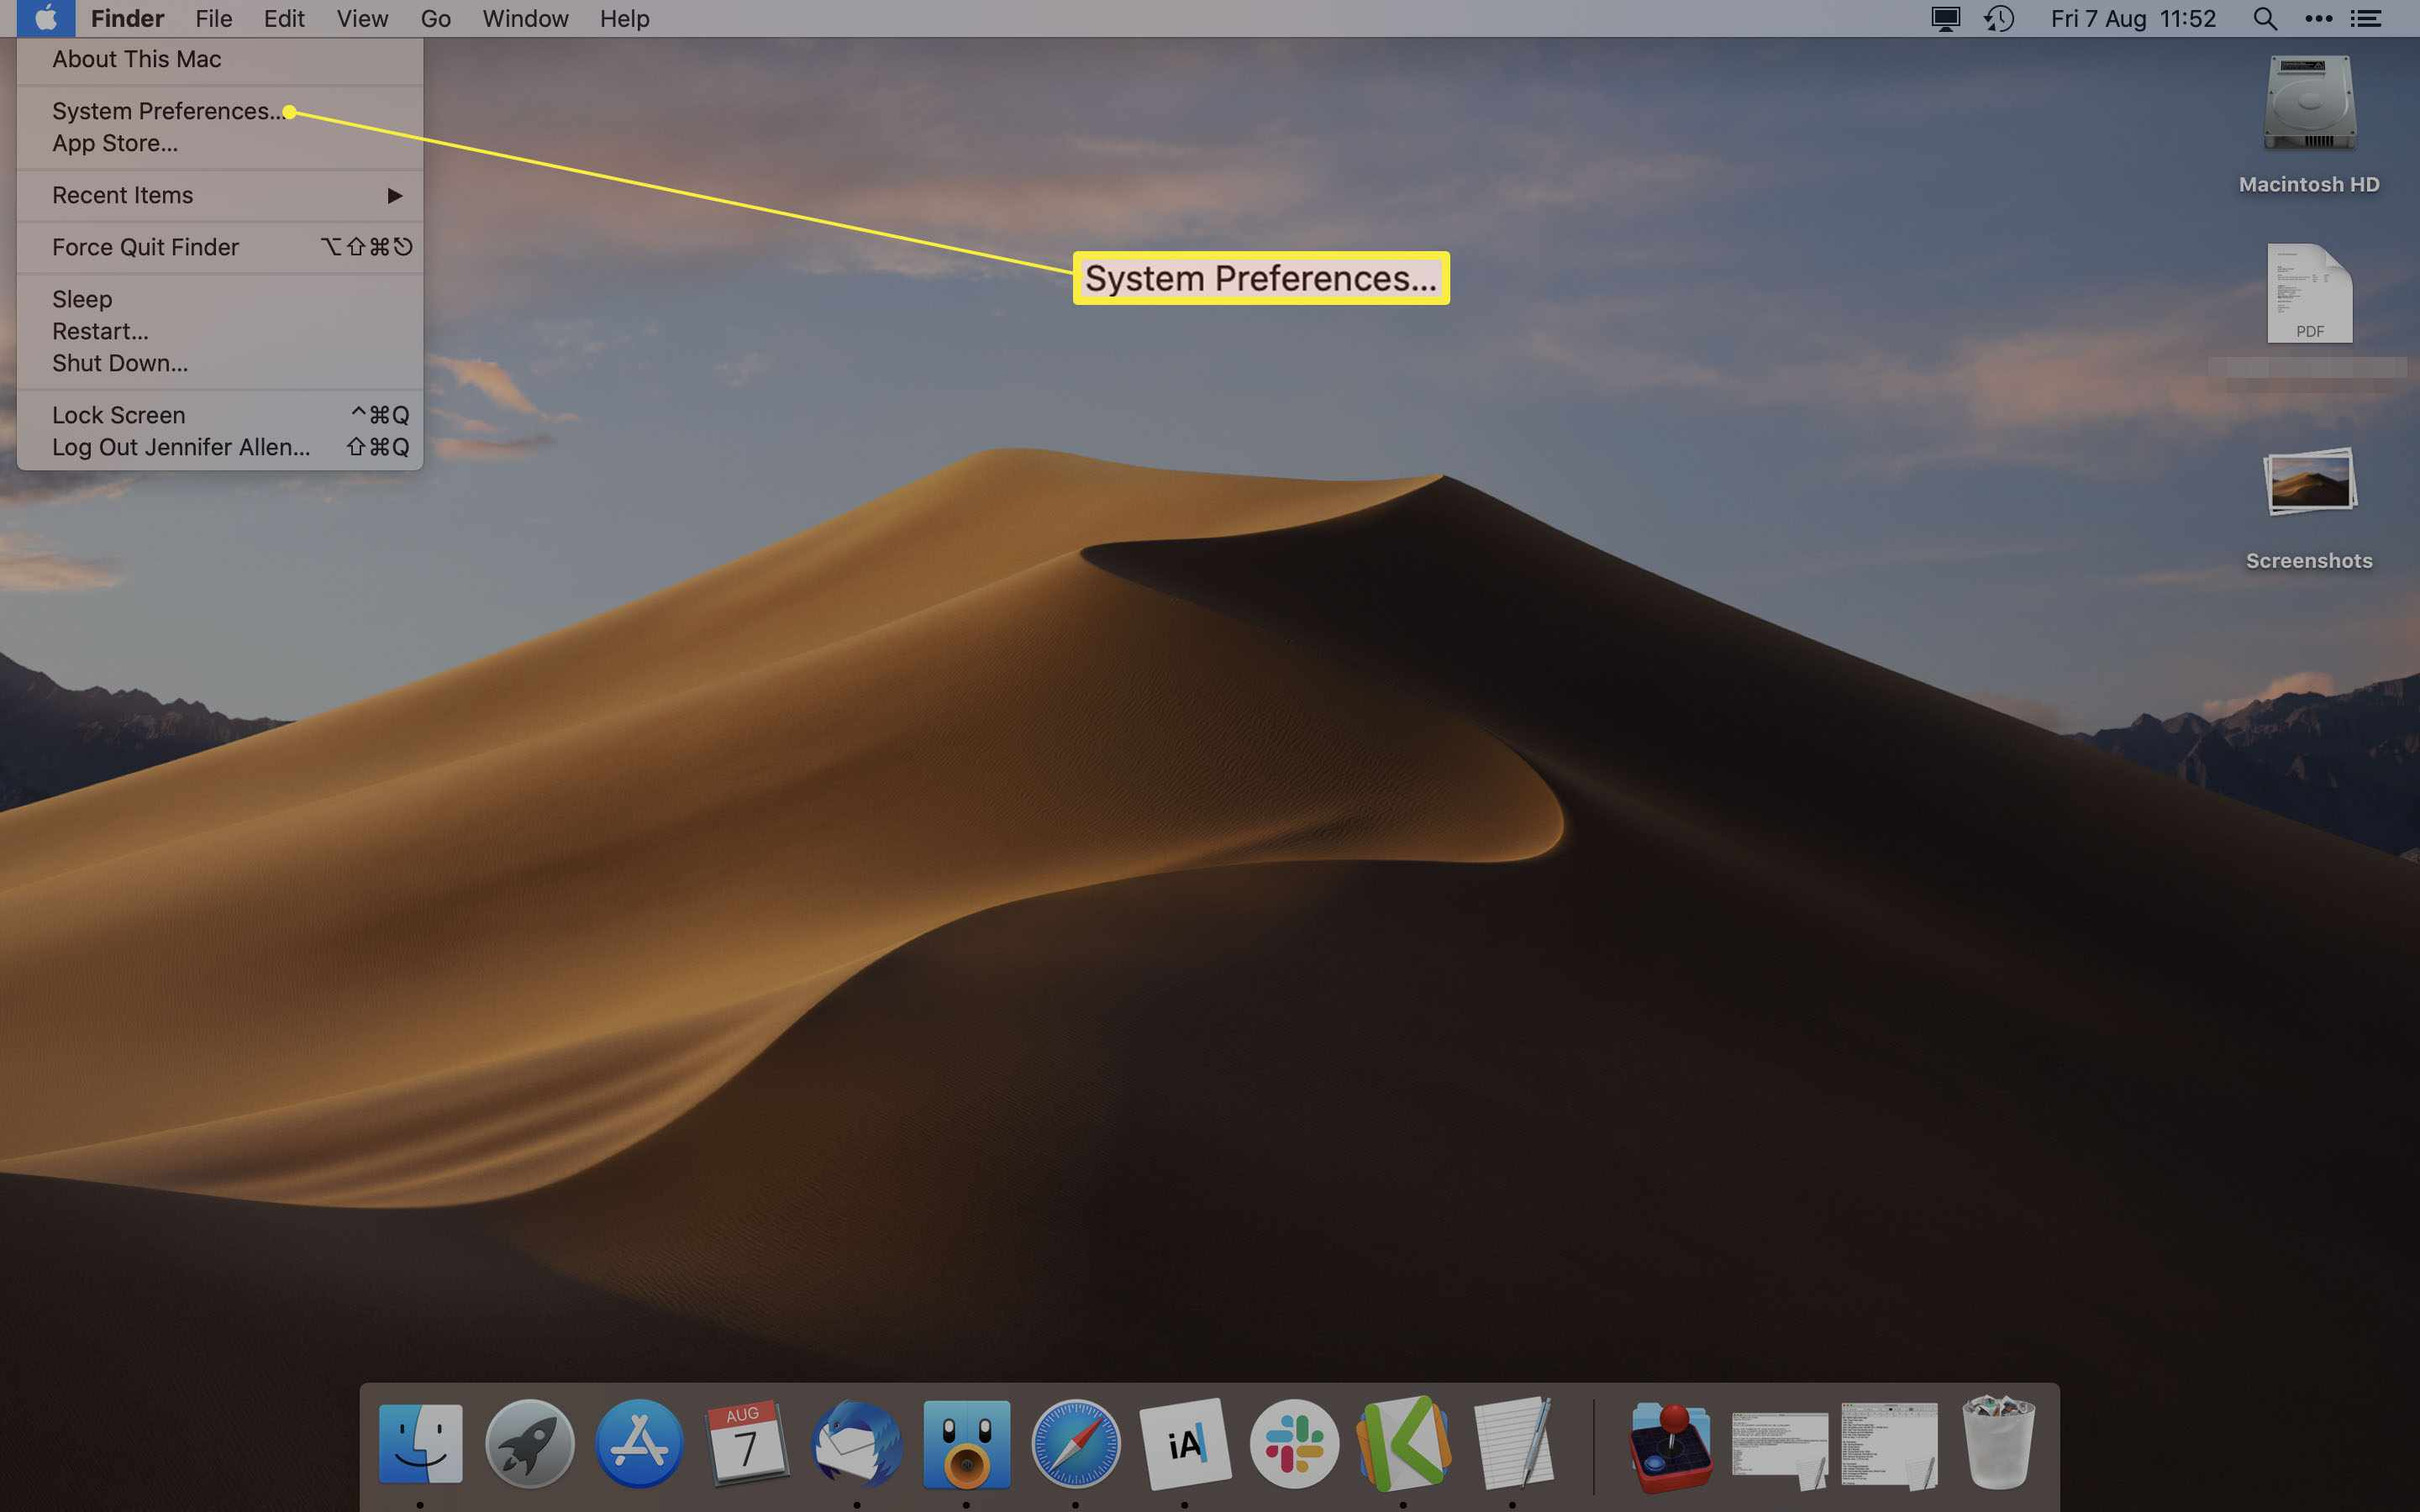 Mac desktop with System Preferences highlighted